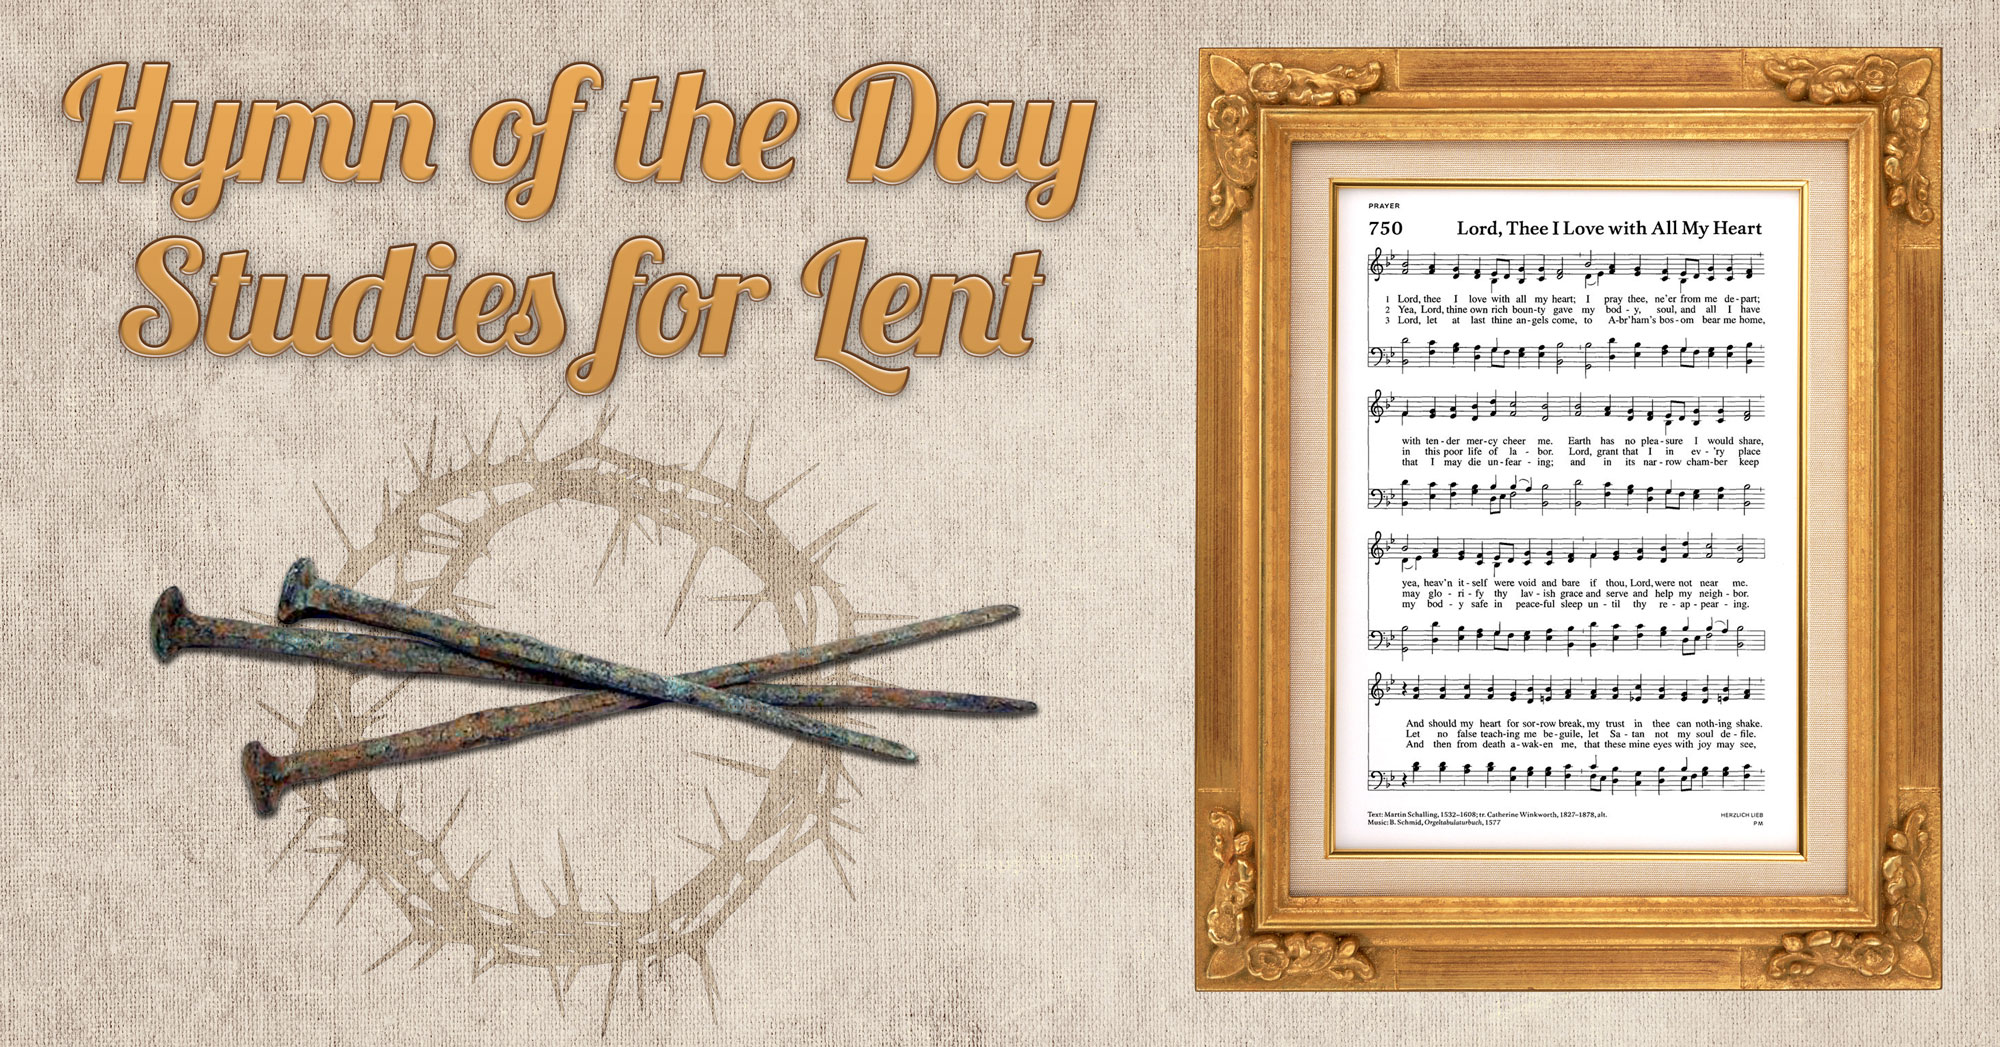 2019.03.15_Lenten-Hymn-of-the-Day.jpg